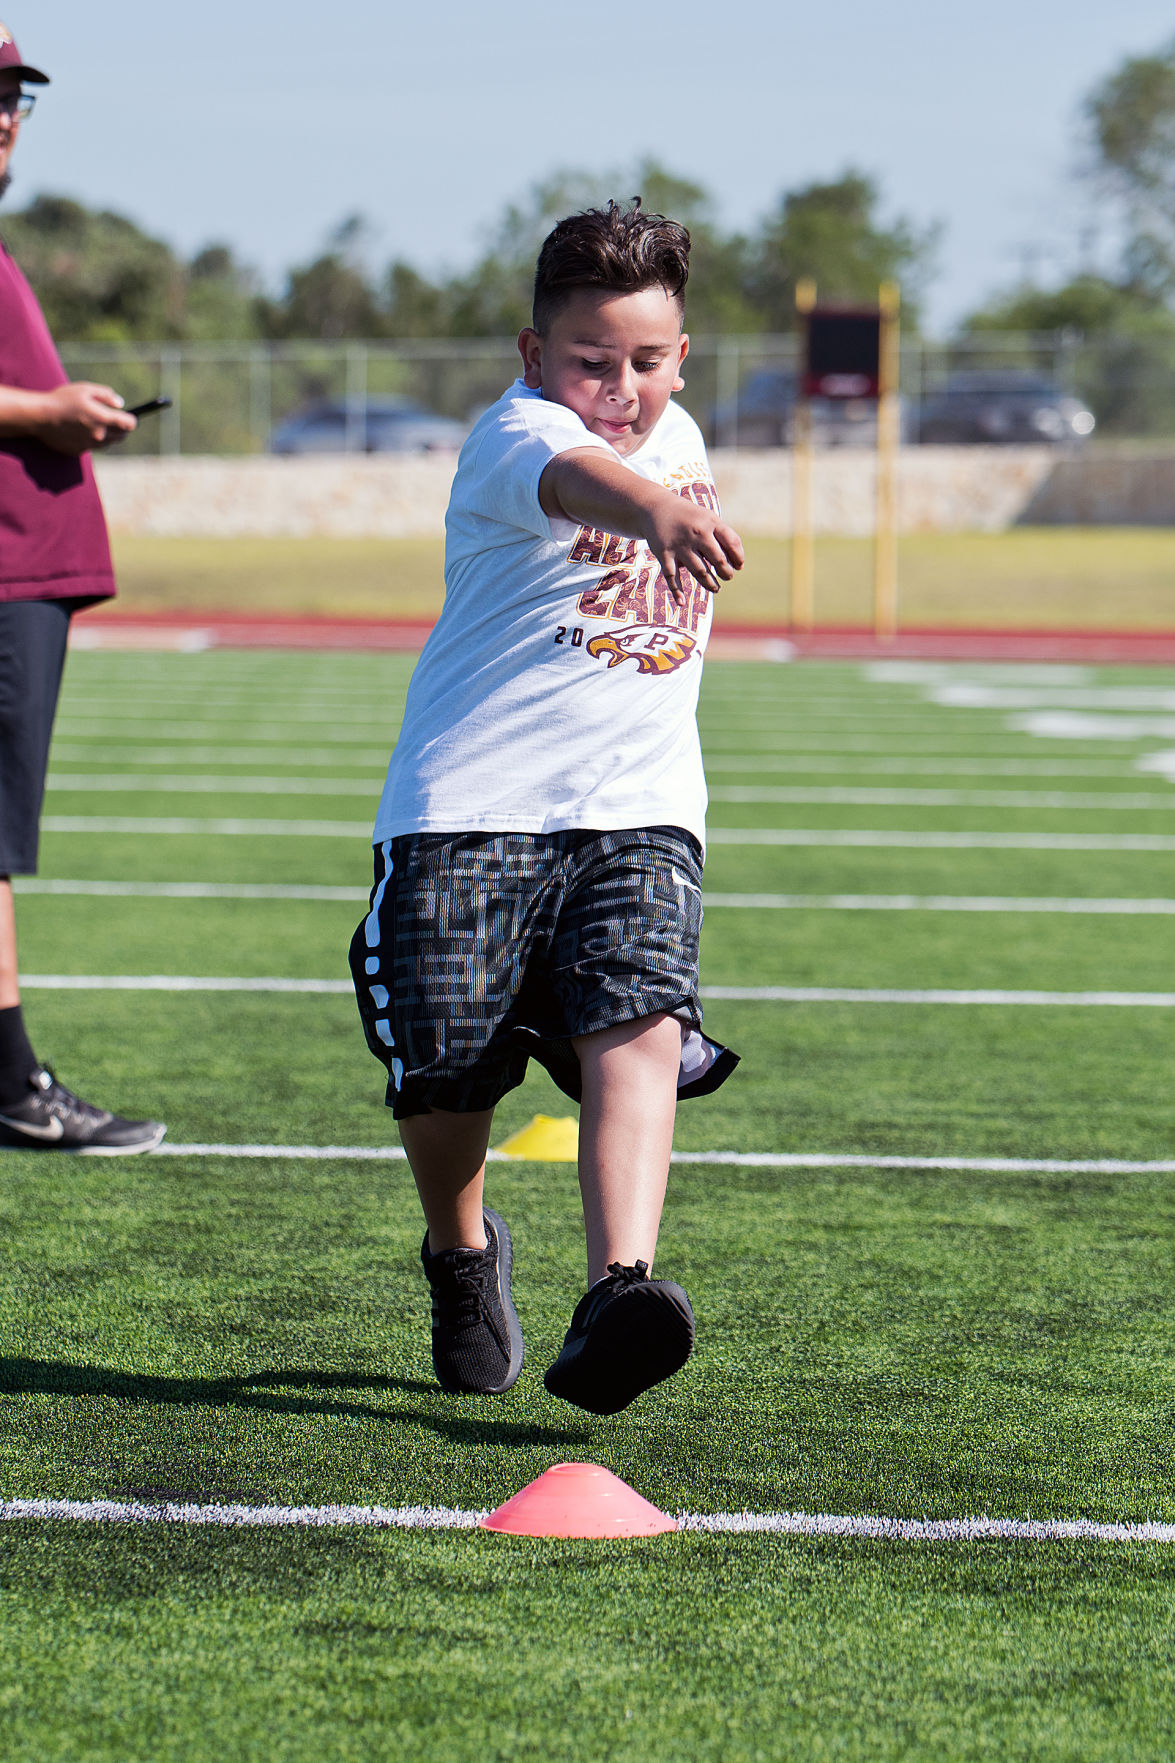 spt 7-31 pettus FB camp 1.jpg